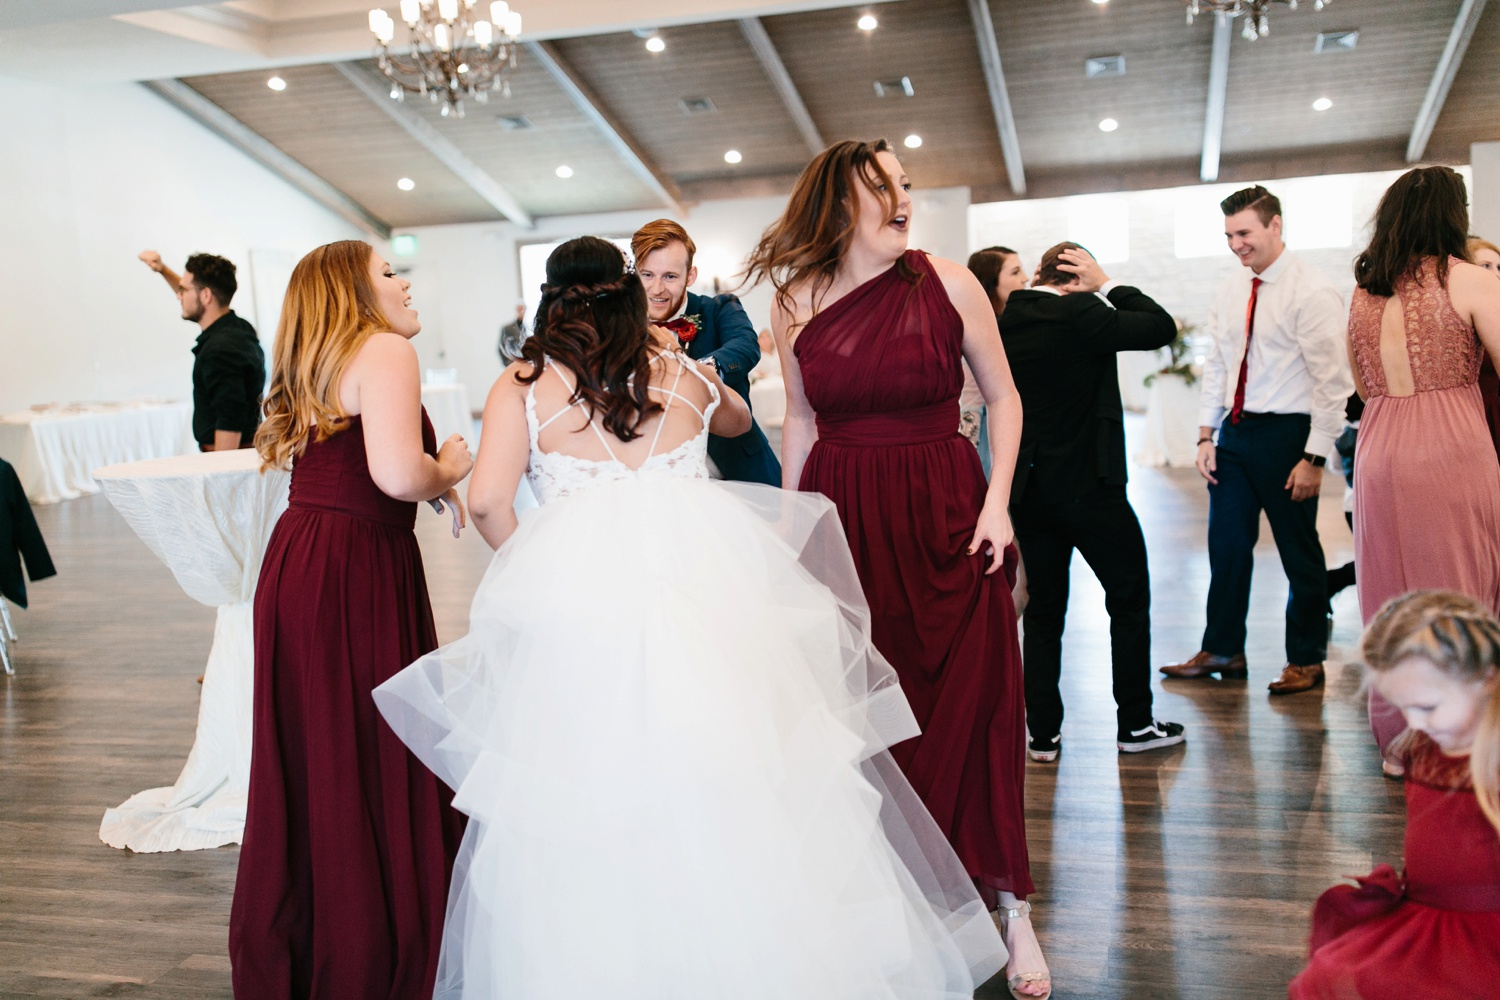 Grant + Lysette | a vibrant, deep burgundy and navy, and mixed metals wedding at Hidden Pines Chapel by North Texas Wedding Photographer Rachel Meagan Photography 166